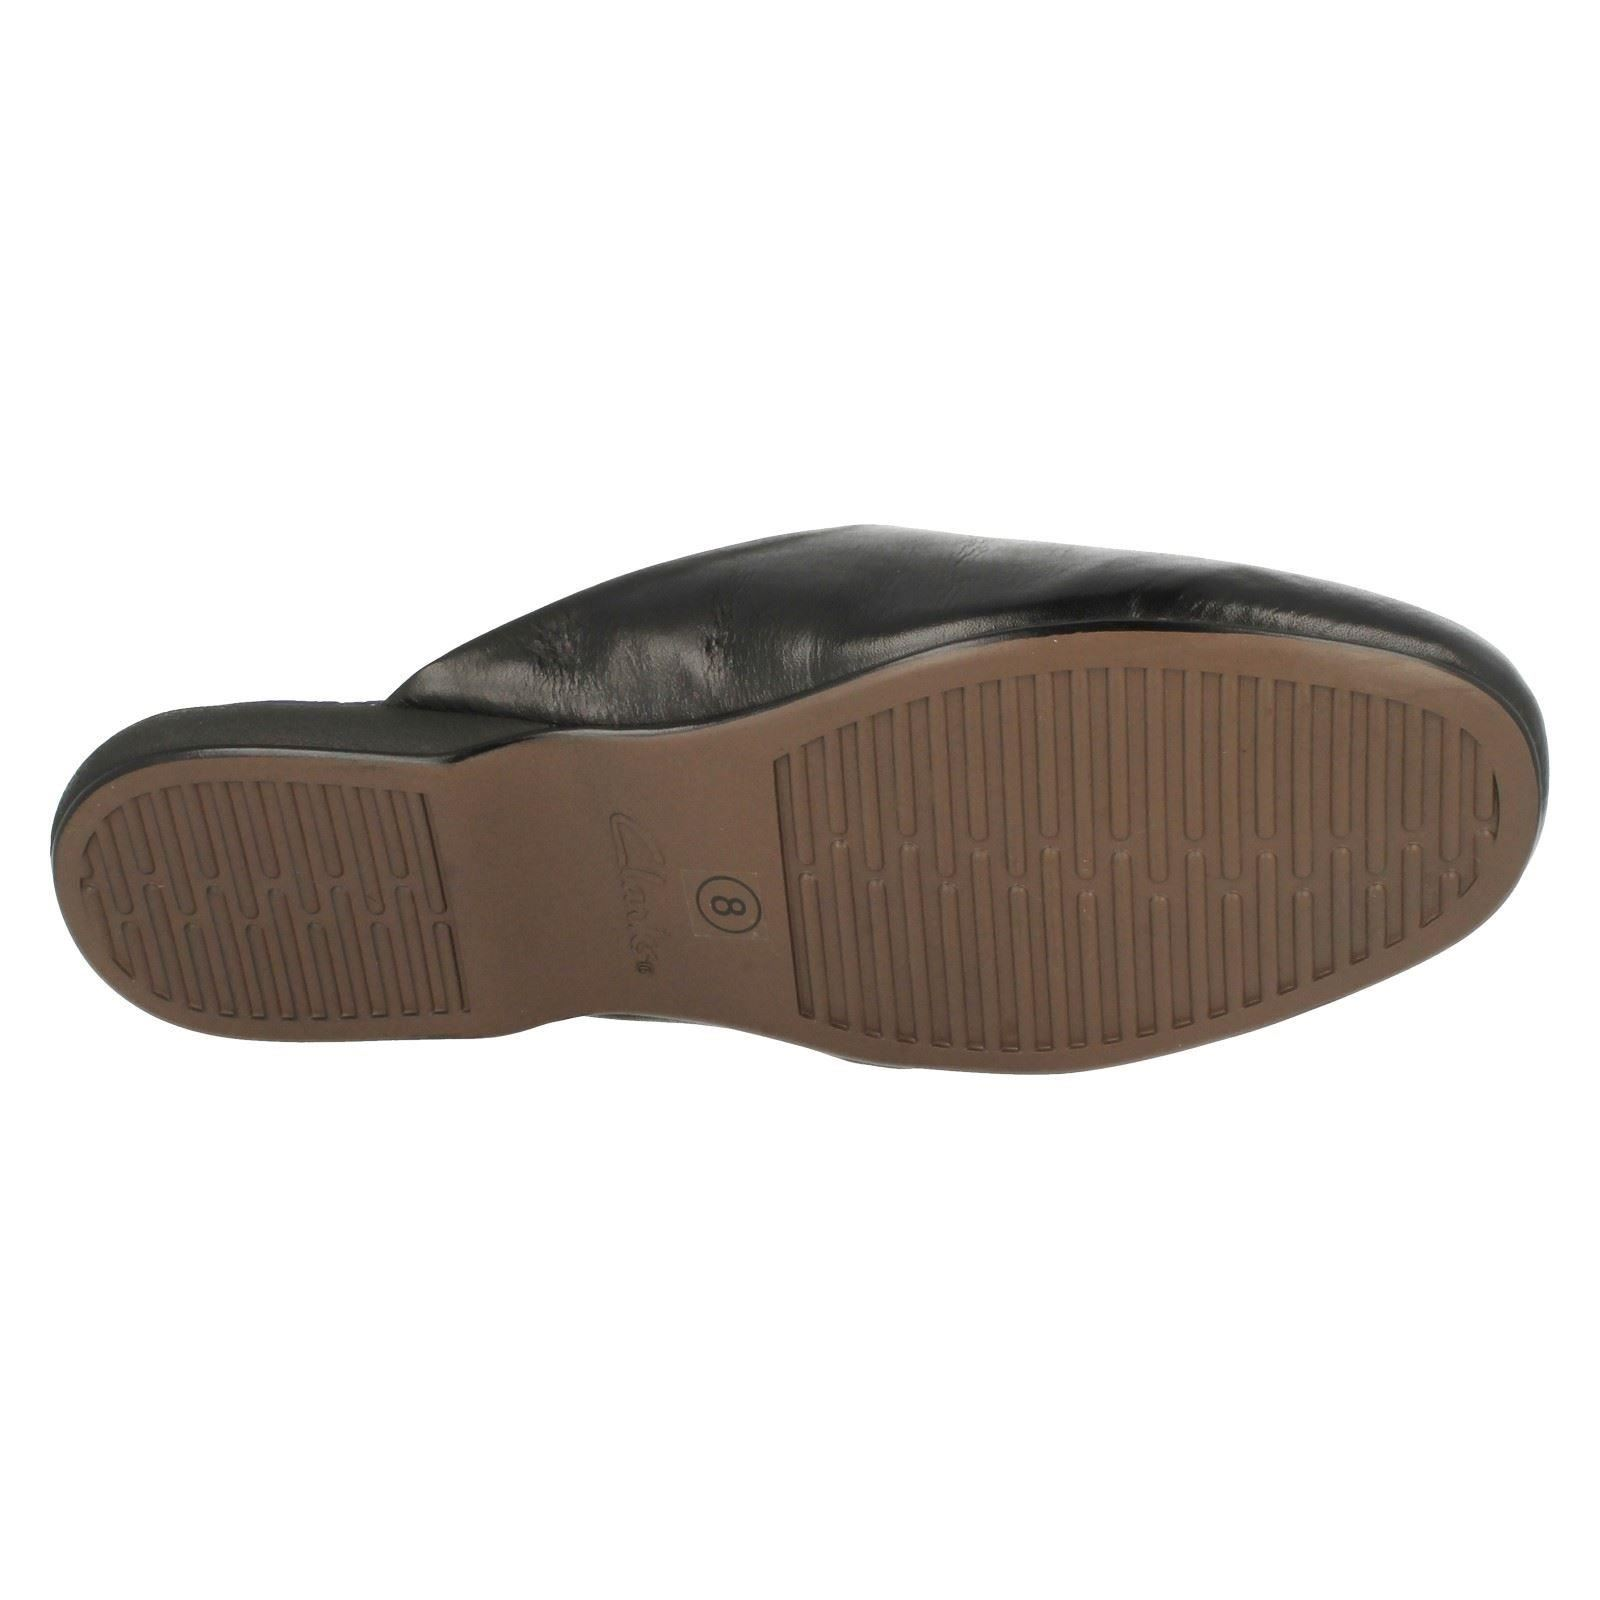 Slide' Uomo Clarks Slippers 'Harston Slide'  ca9920